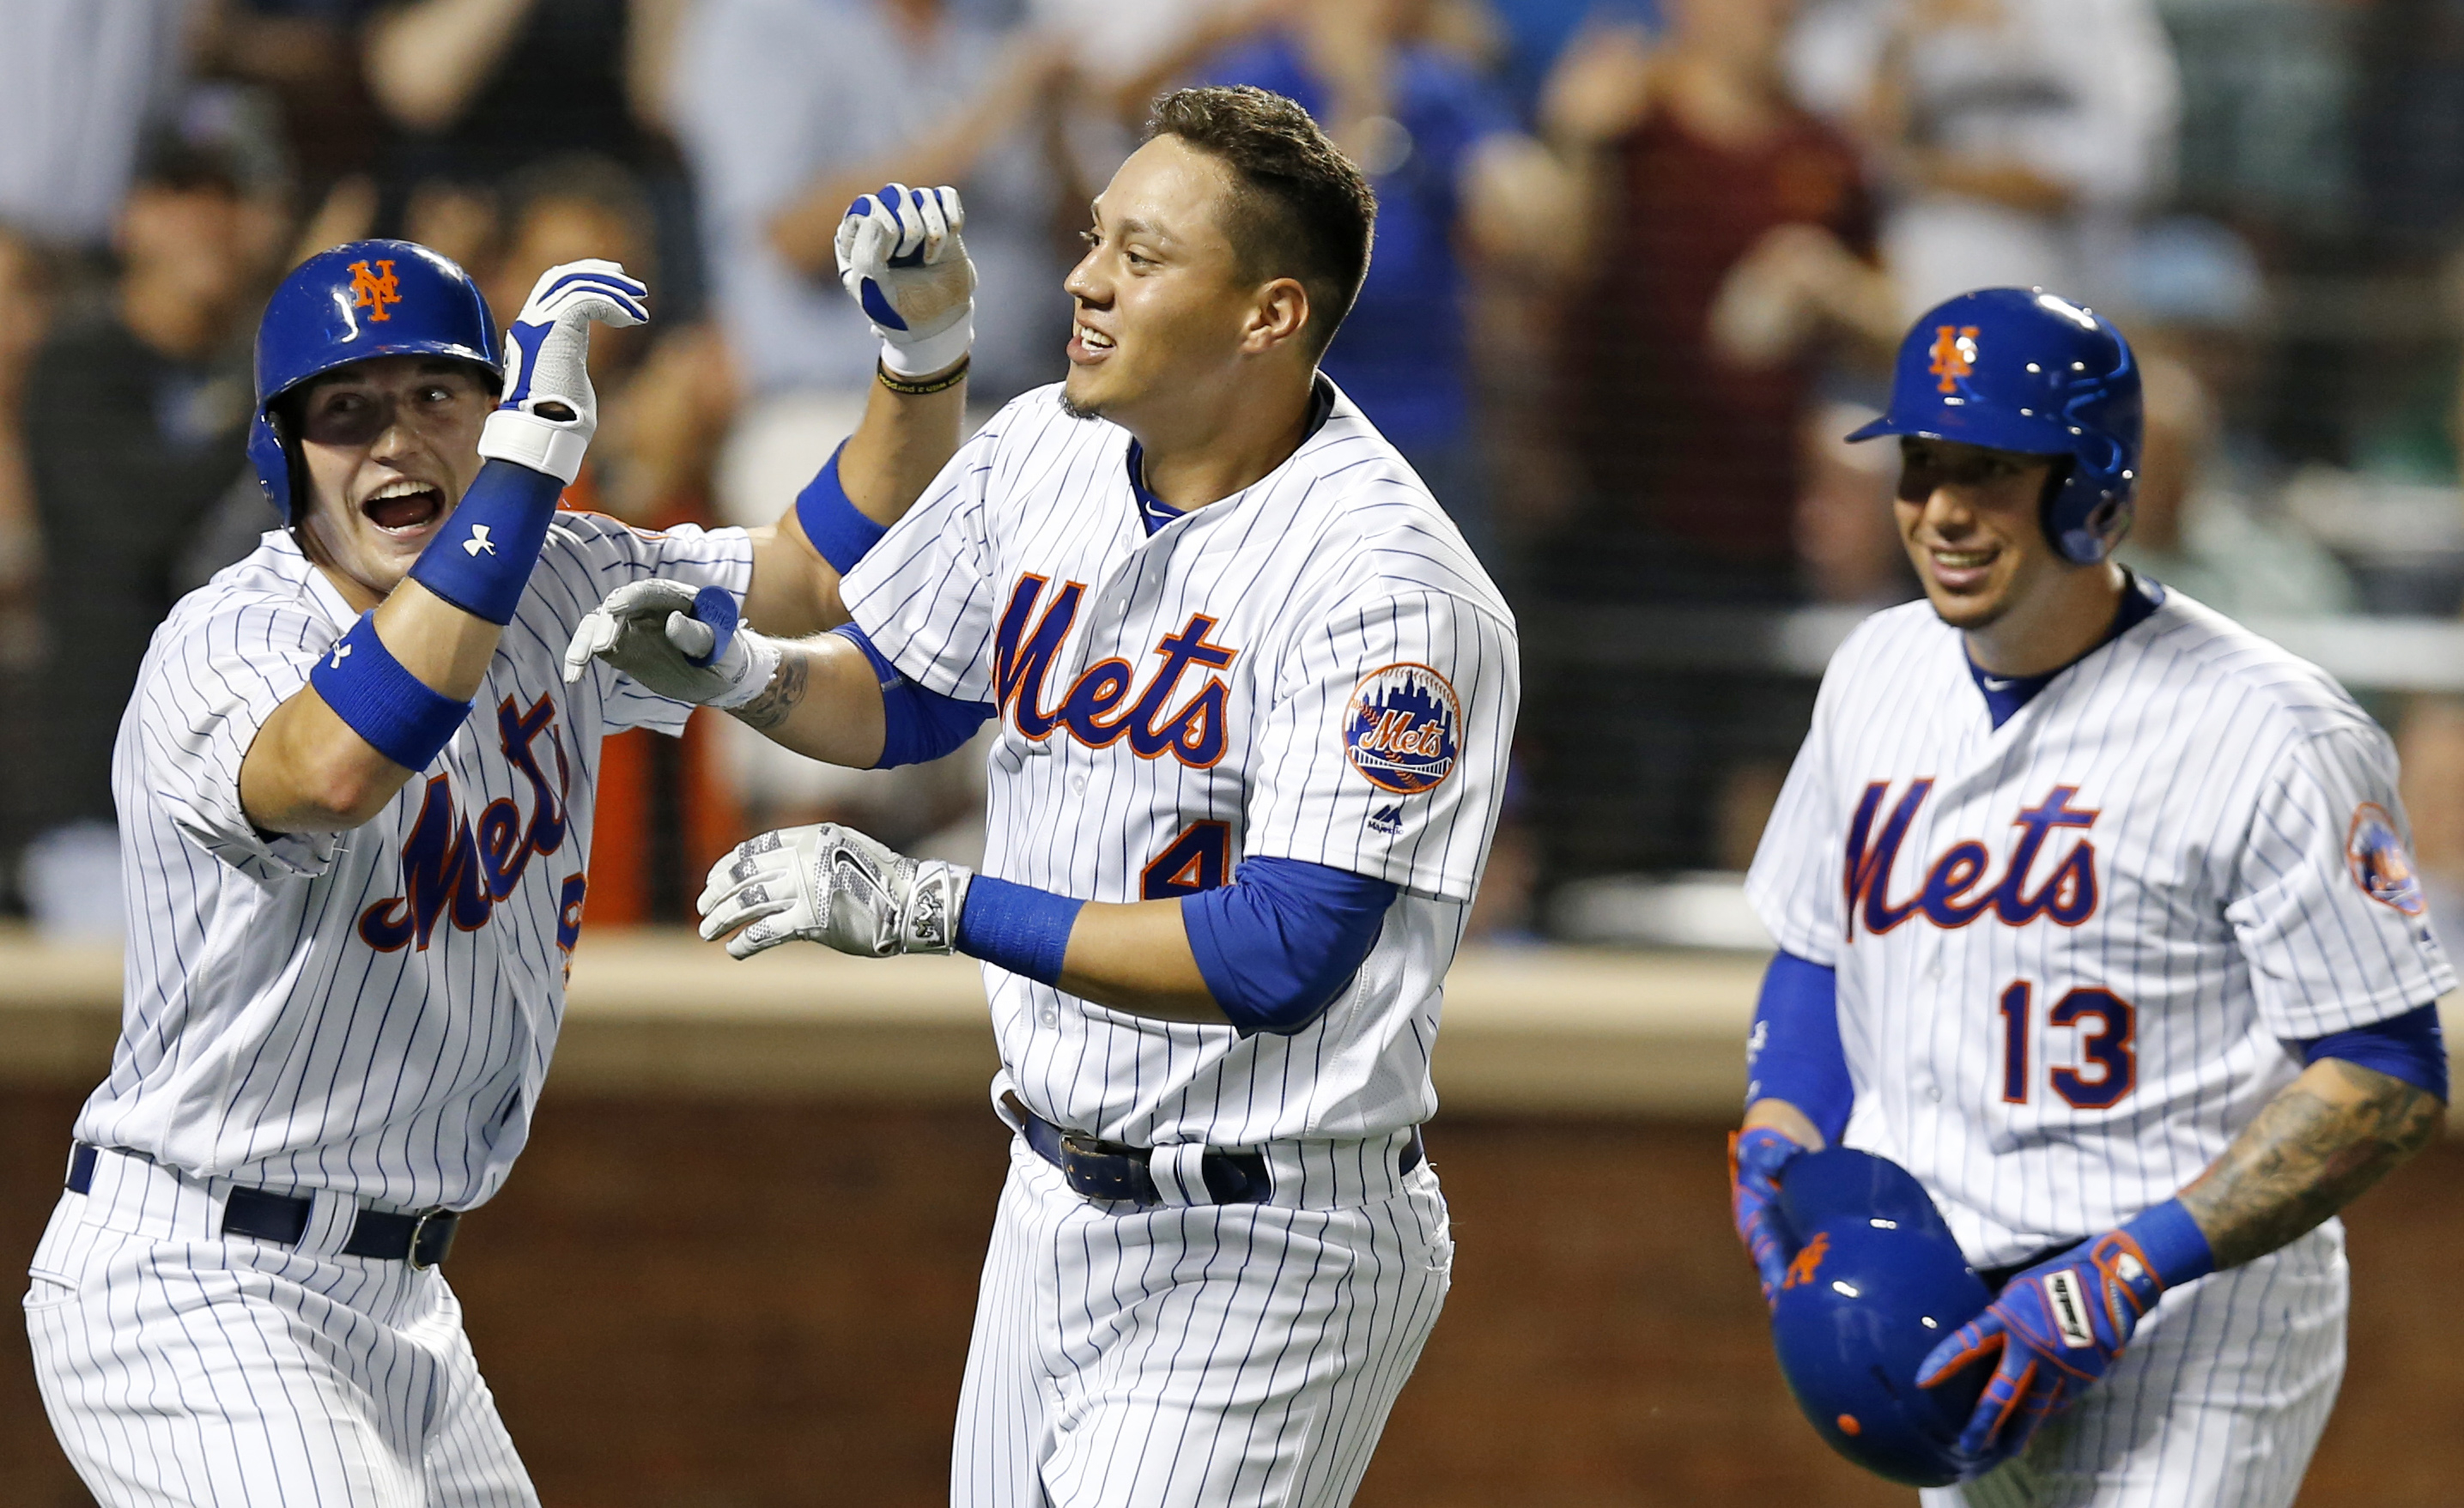 New York Mets left fielder Brandon Nimmo (9), Mets Wilmer Flores (4) and Mets Asdrubal Cabrera celebrate after Nimmo and Cabrera scored on Flores's pinch-hit, three-run, home run during the fifth inning of a baseball game against the Washington Nationals,